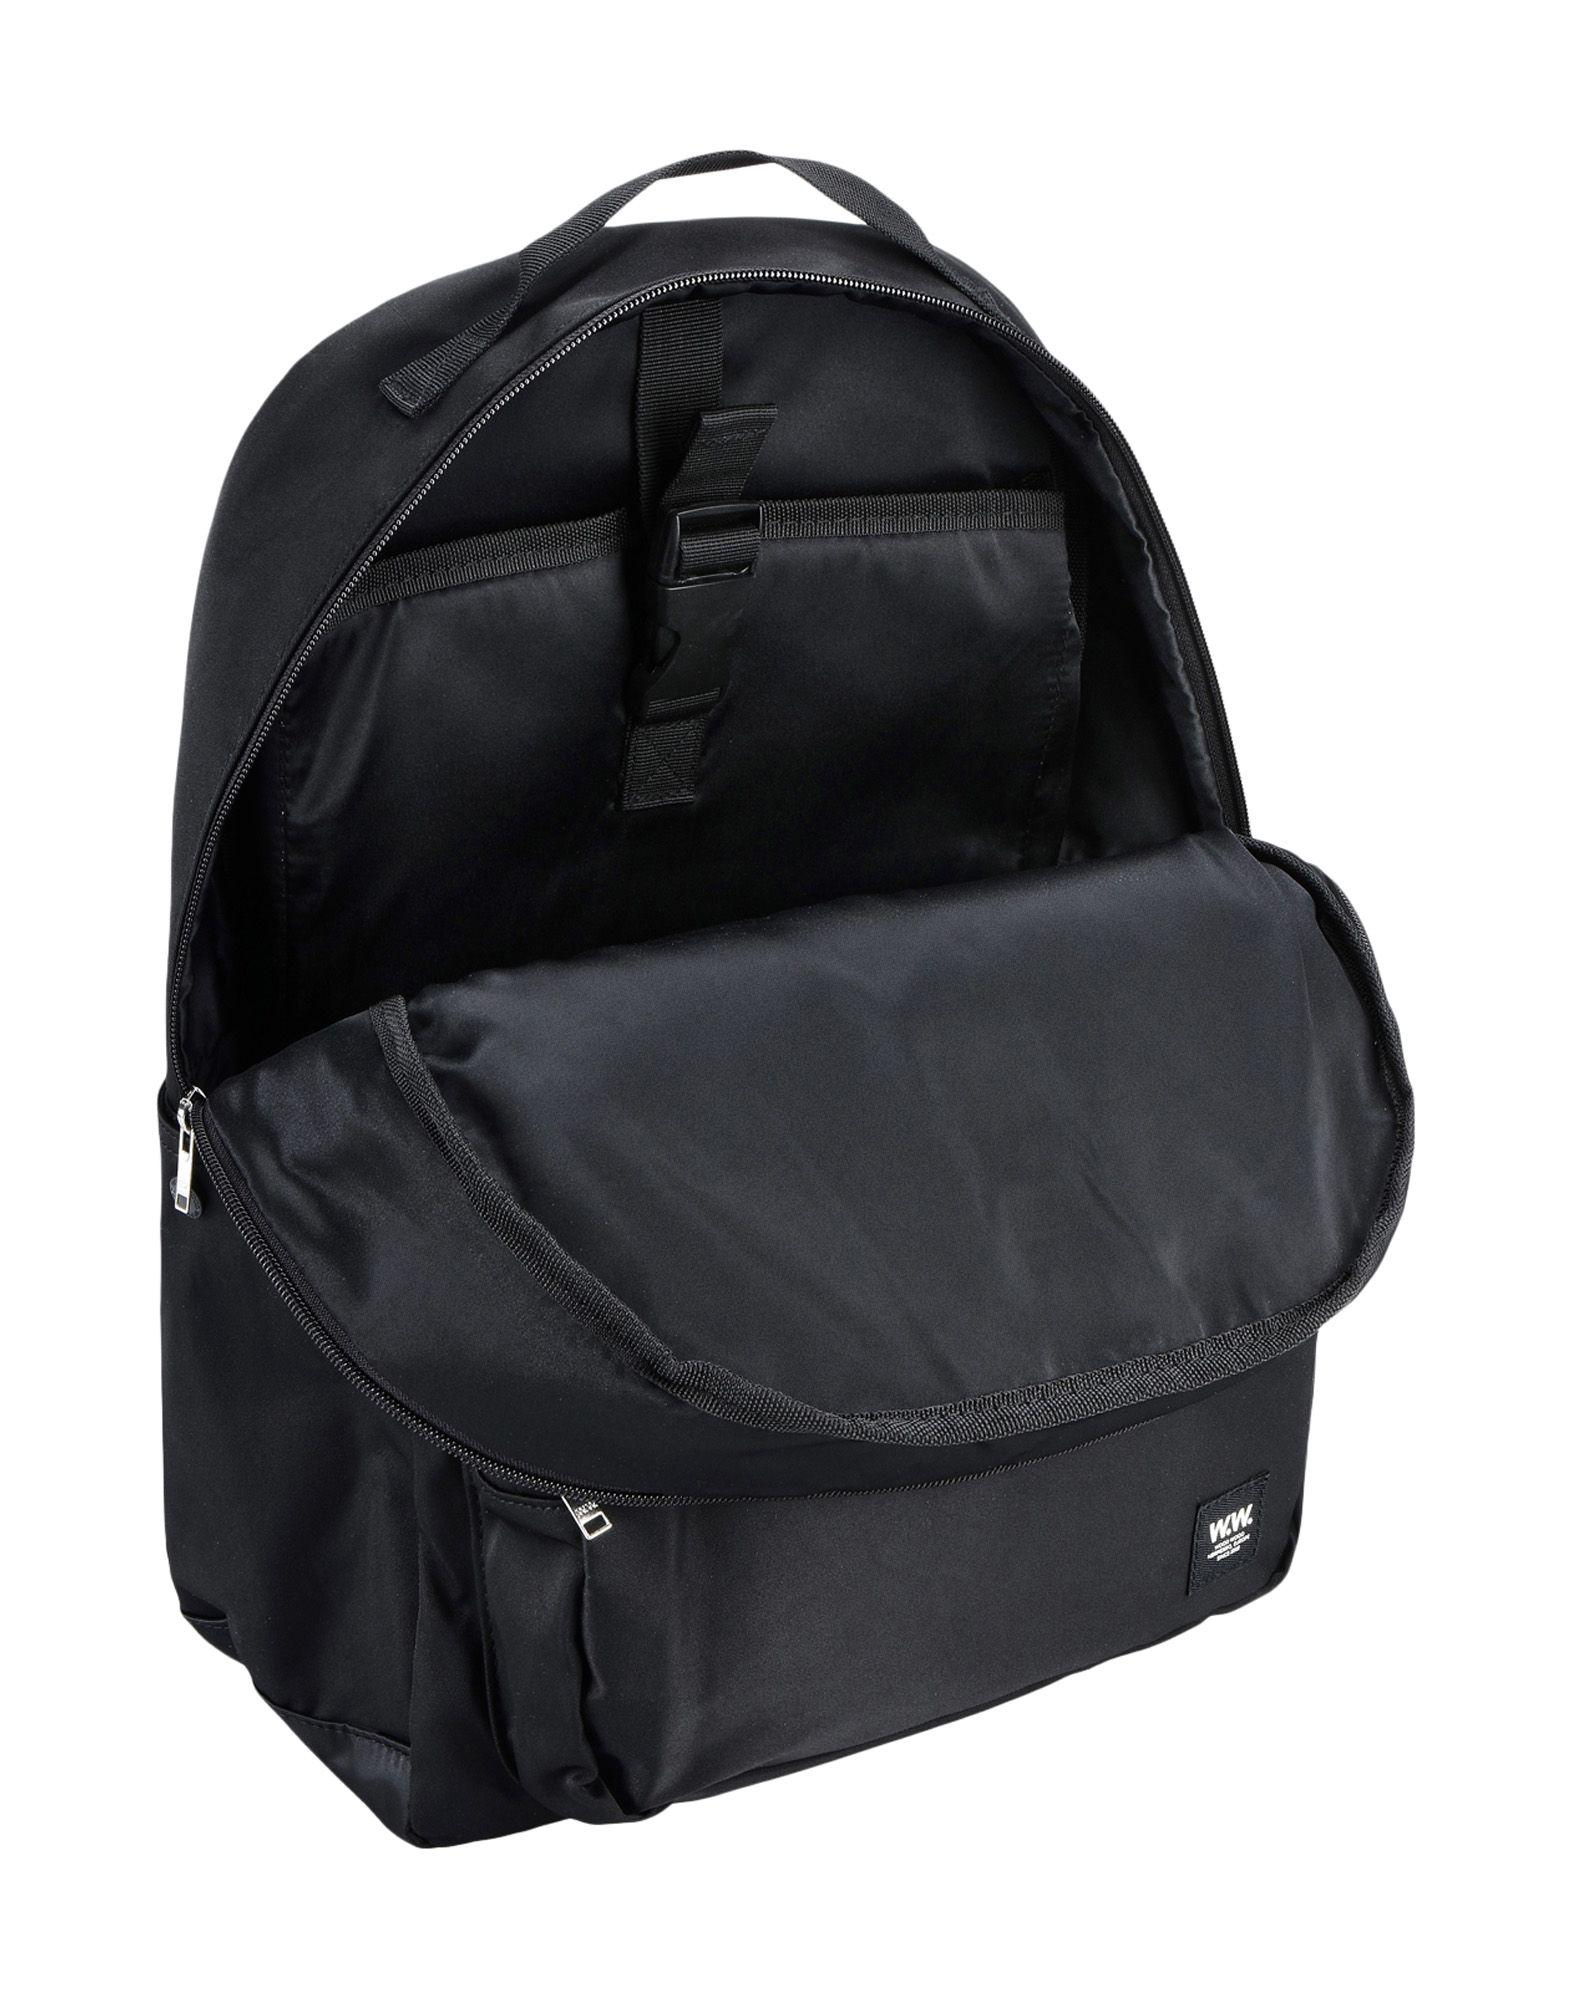 Backpacks Wood Lyst Black Bags Men Bum In amp; For H7x5w1xqv